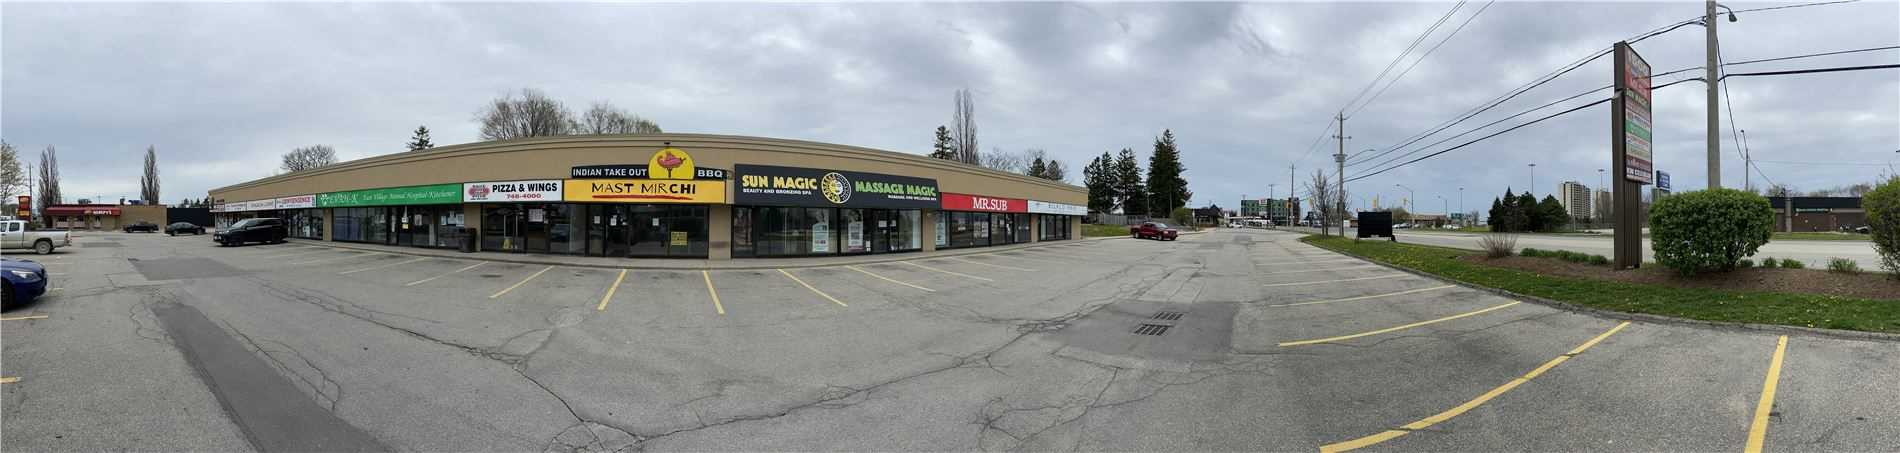 1500 Weber St, Kitchener, Ontario N2A2Y5, ,Sale Of Business,For Sale,Weber,X4789439